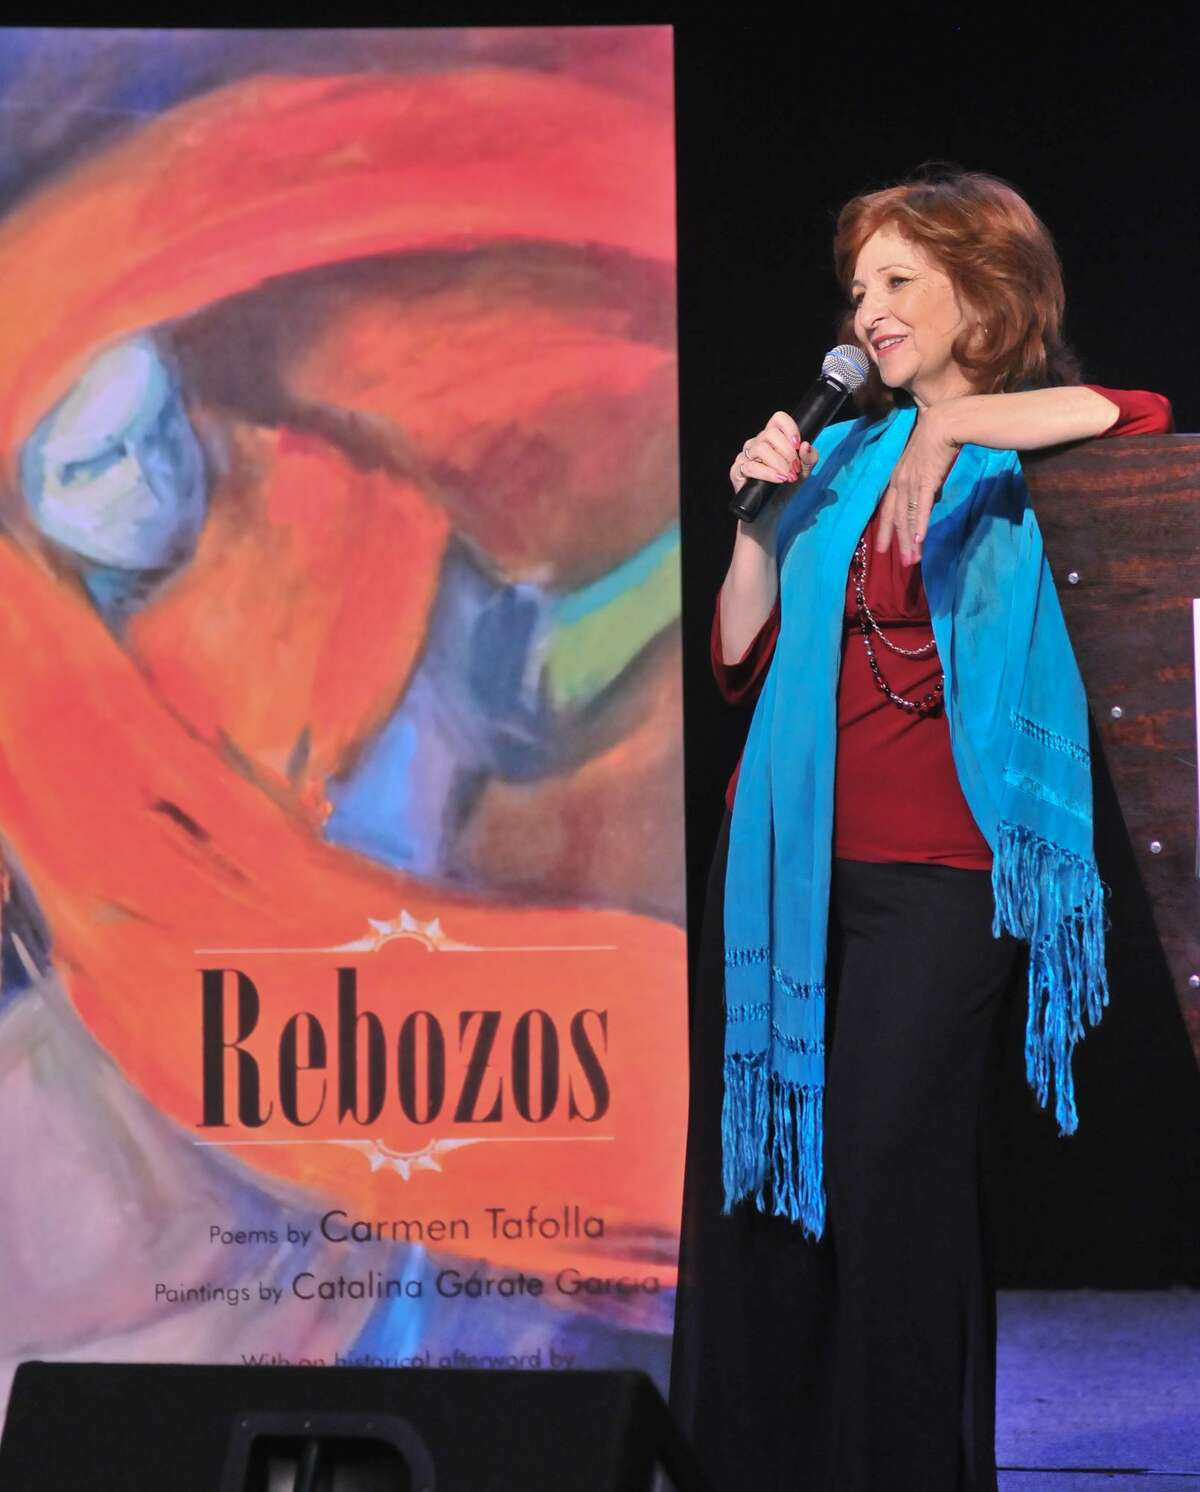 """San Antonio author and poet Laureate Carmen Tafolla spoke in front of an enlargement of her book """"Rebozos"""" during a children's book event."""